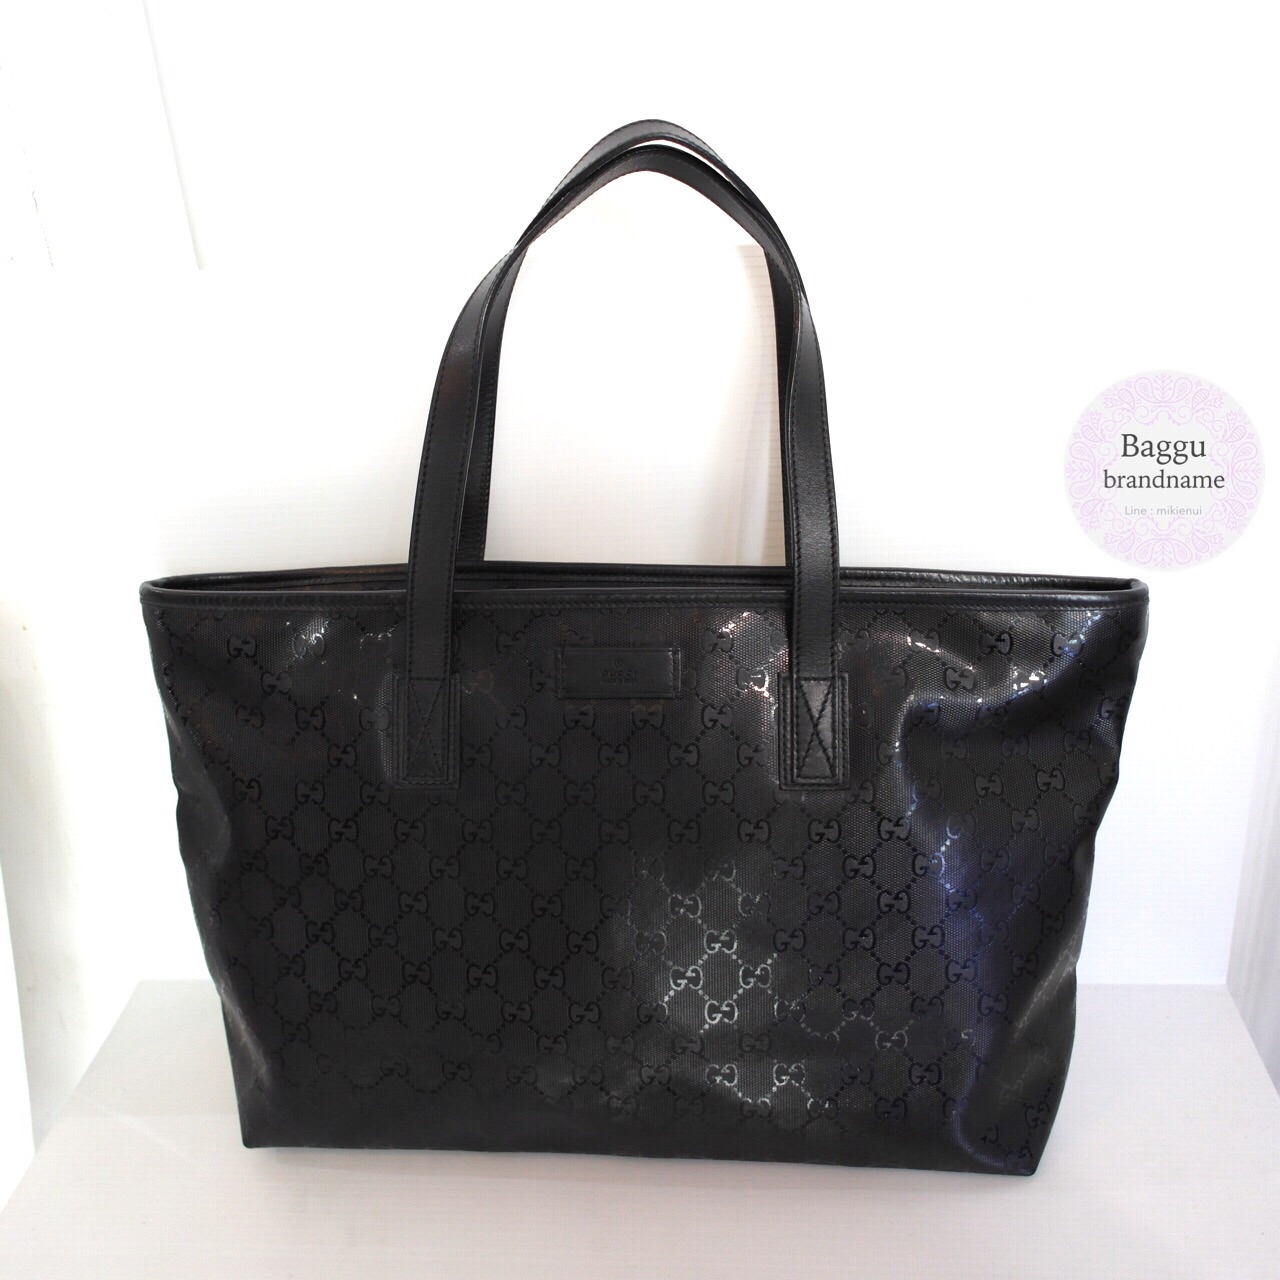 [SOLDOUT]Used - Gucci Shopping bag